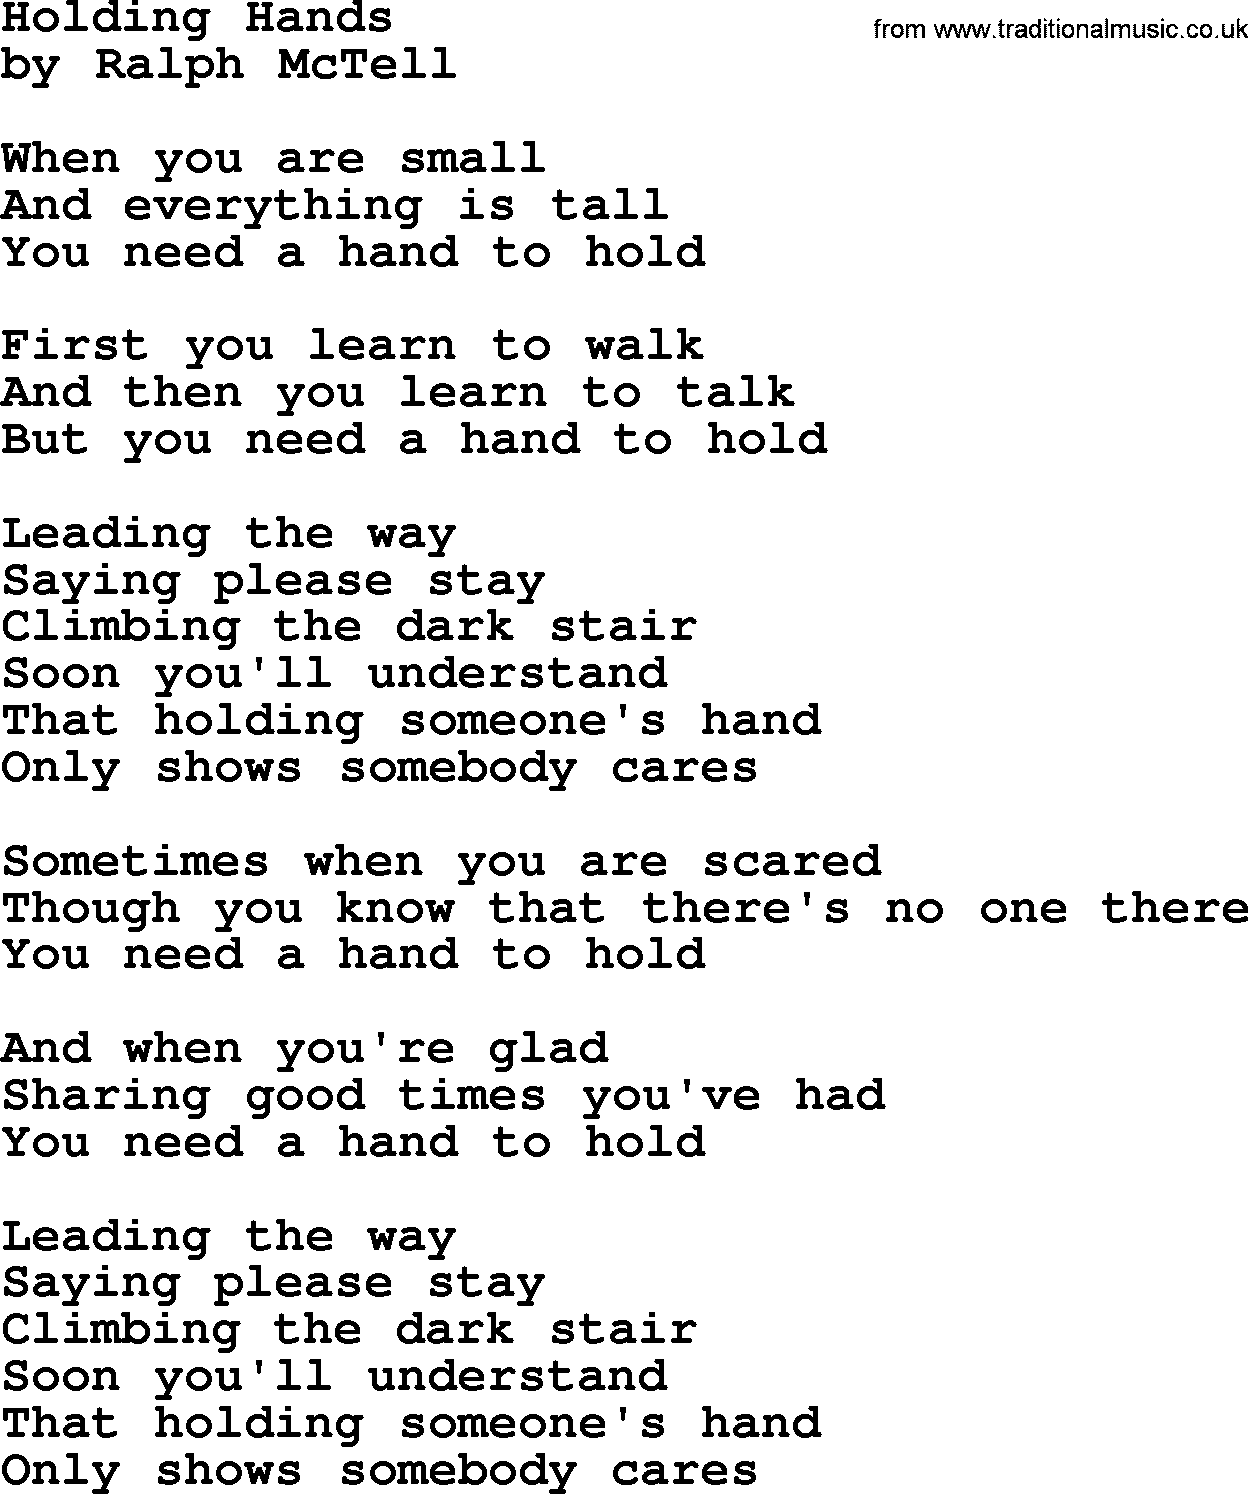 Holding Hands.txt - by Ralph McTell lyrics and chords